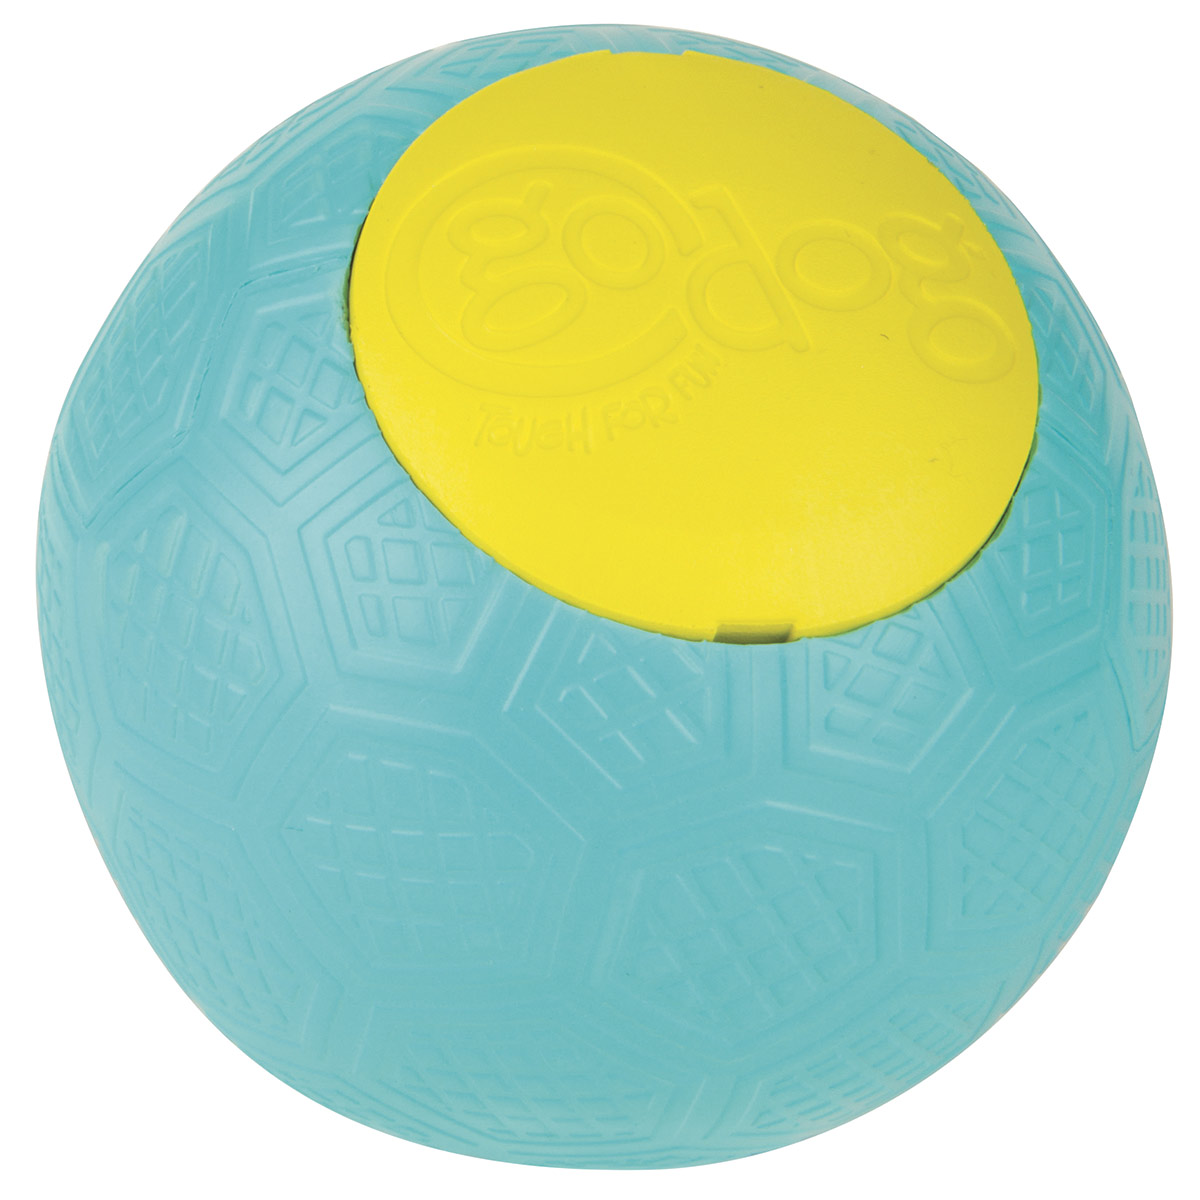 goDog RhinoPlay Beast Teal Rubber Ball for Dogs